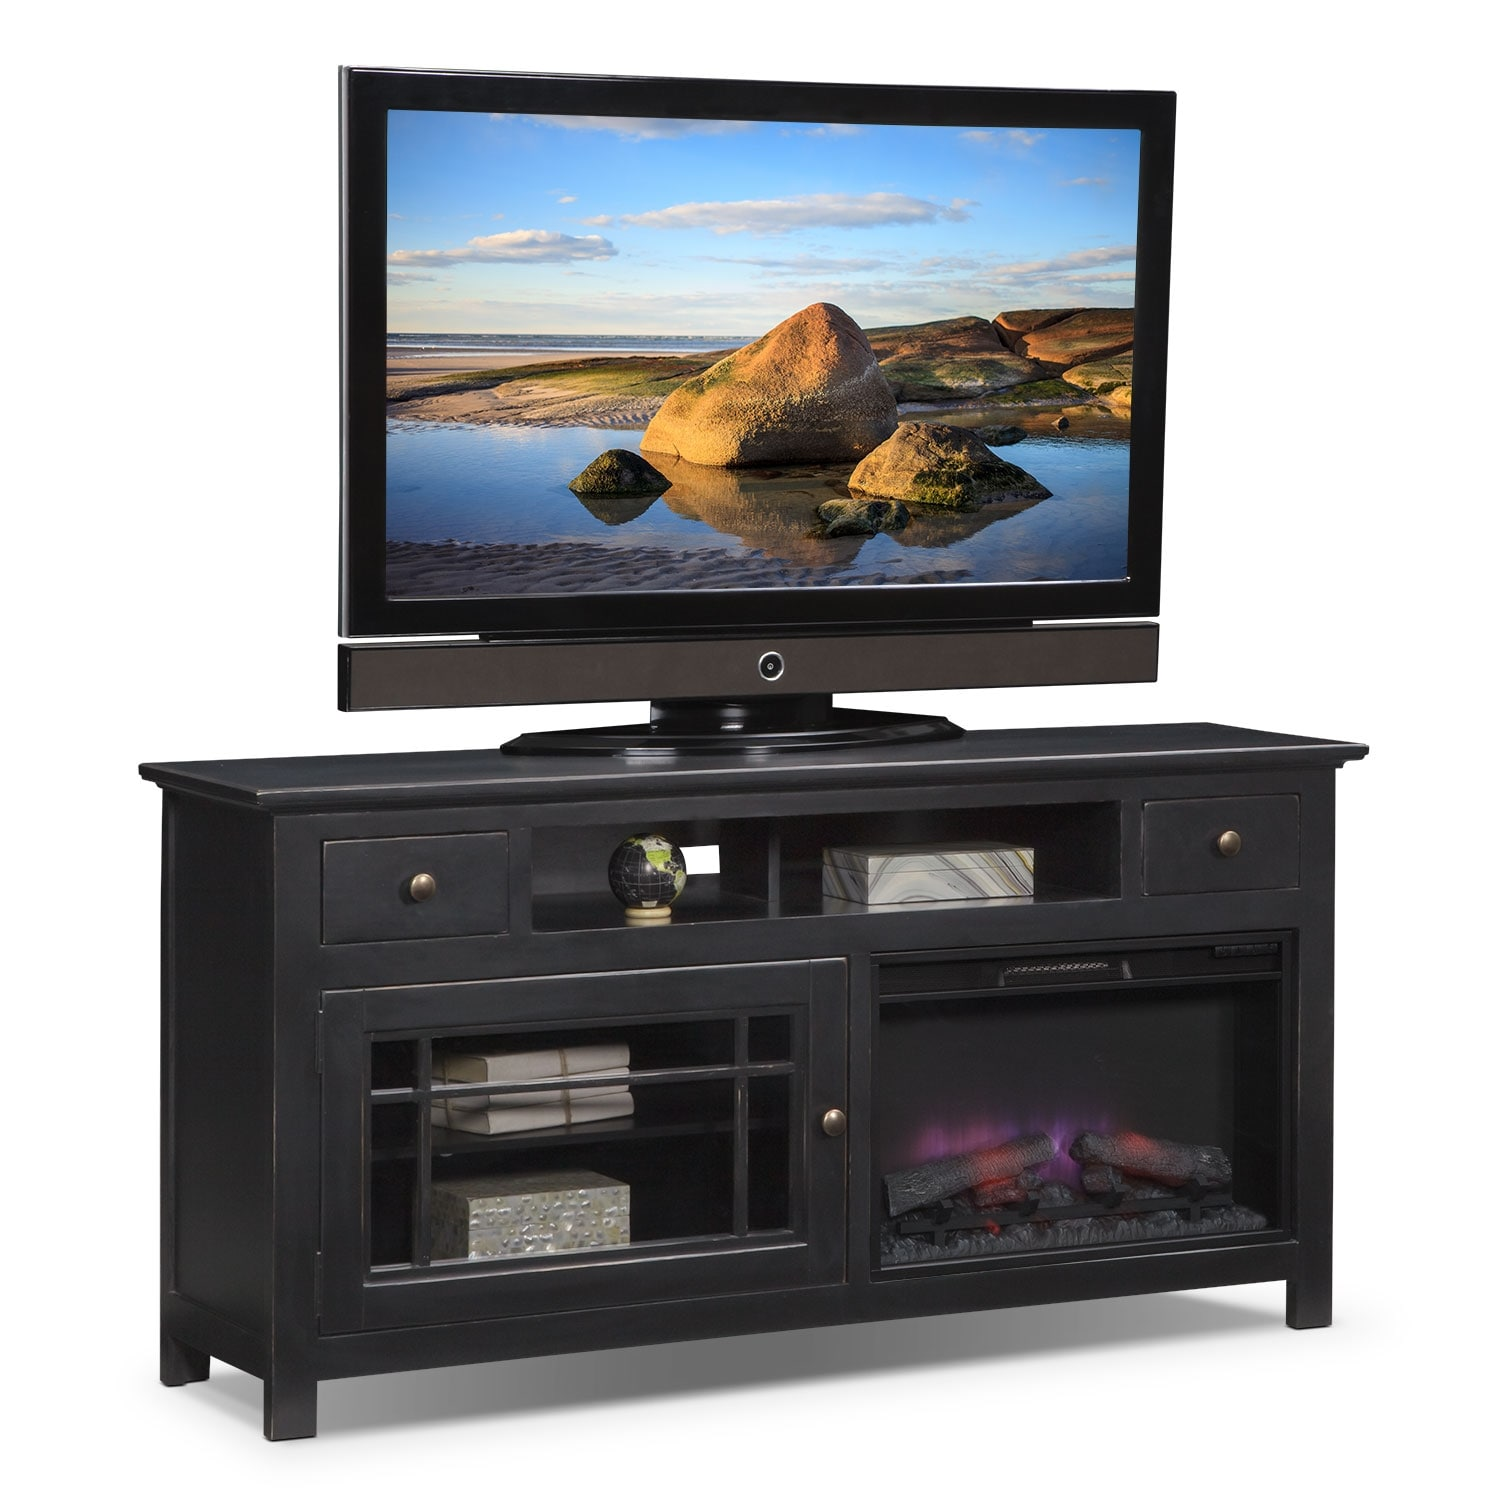 "Merrick 64"" Fireplace TV Stand with Traditional Insert - Black"